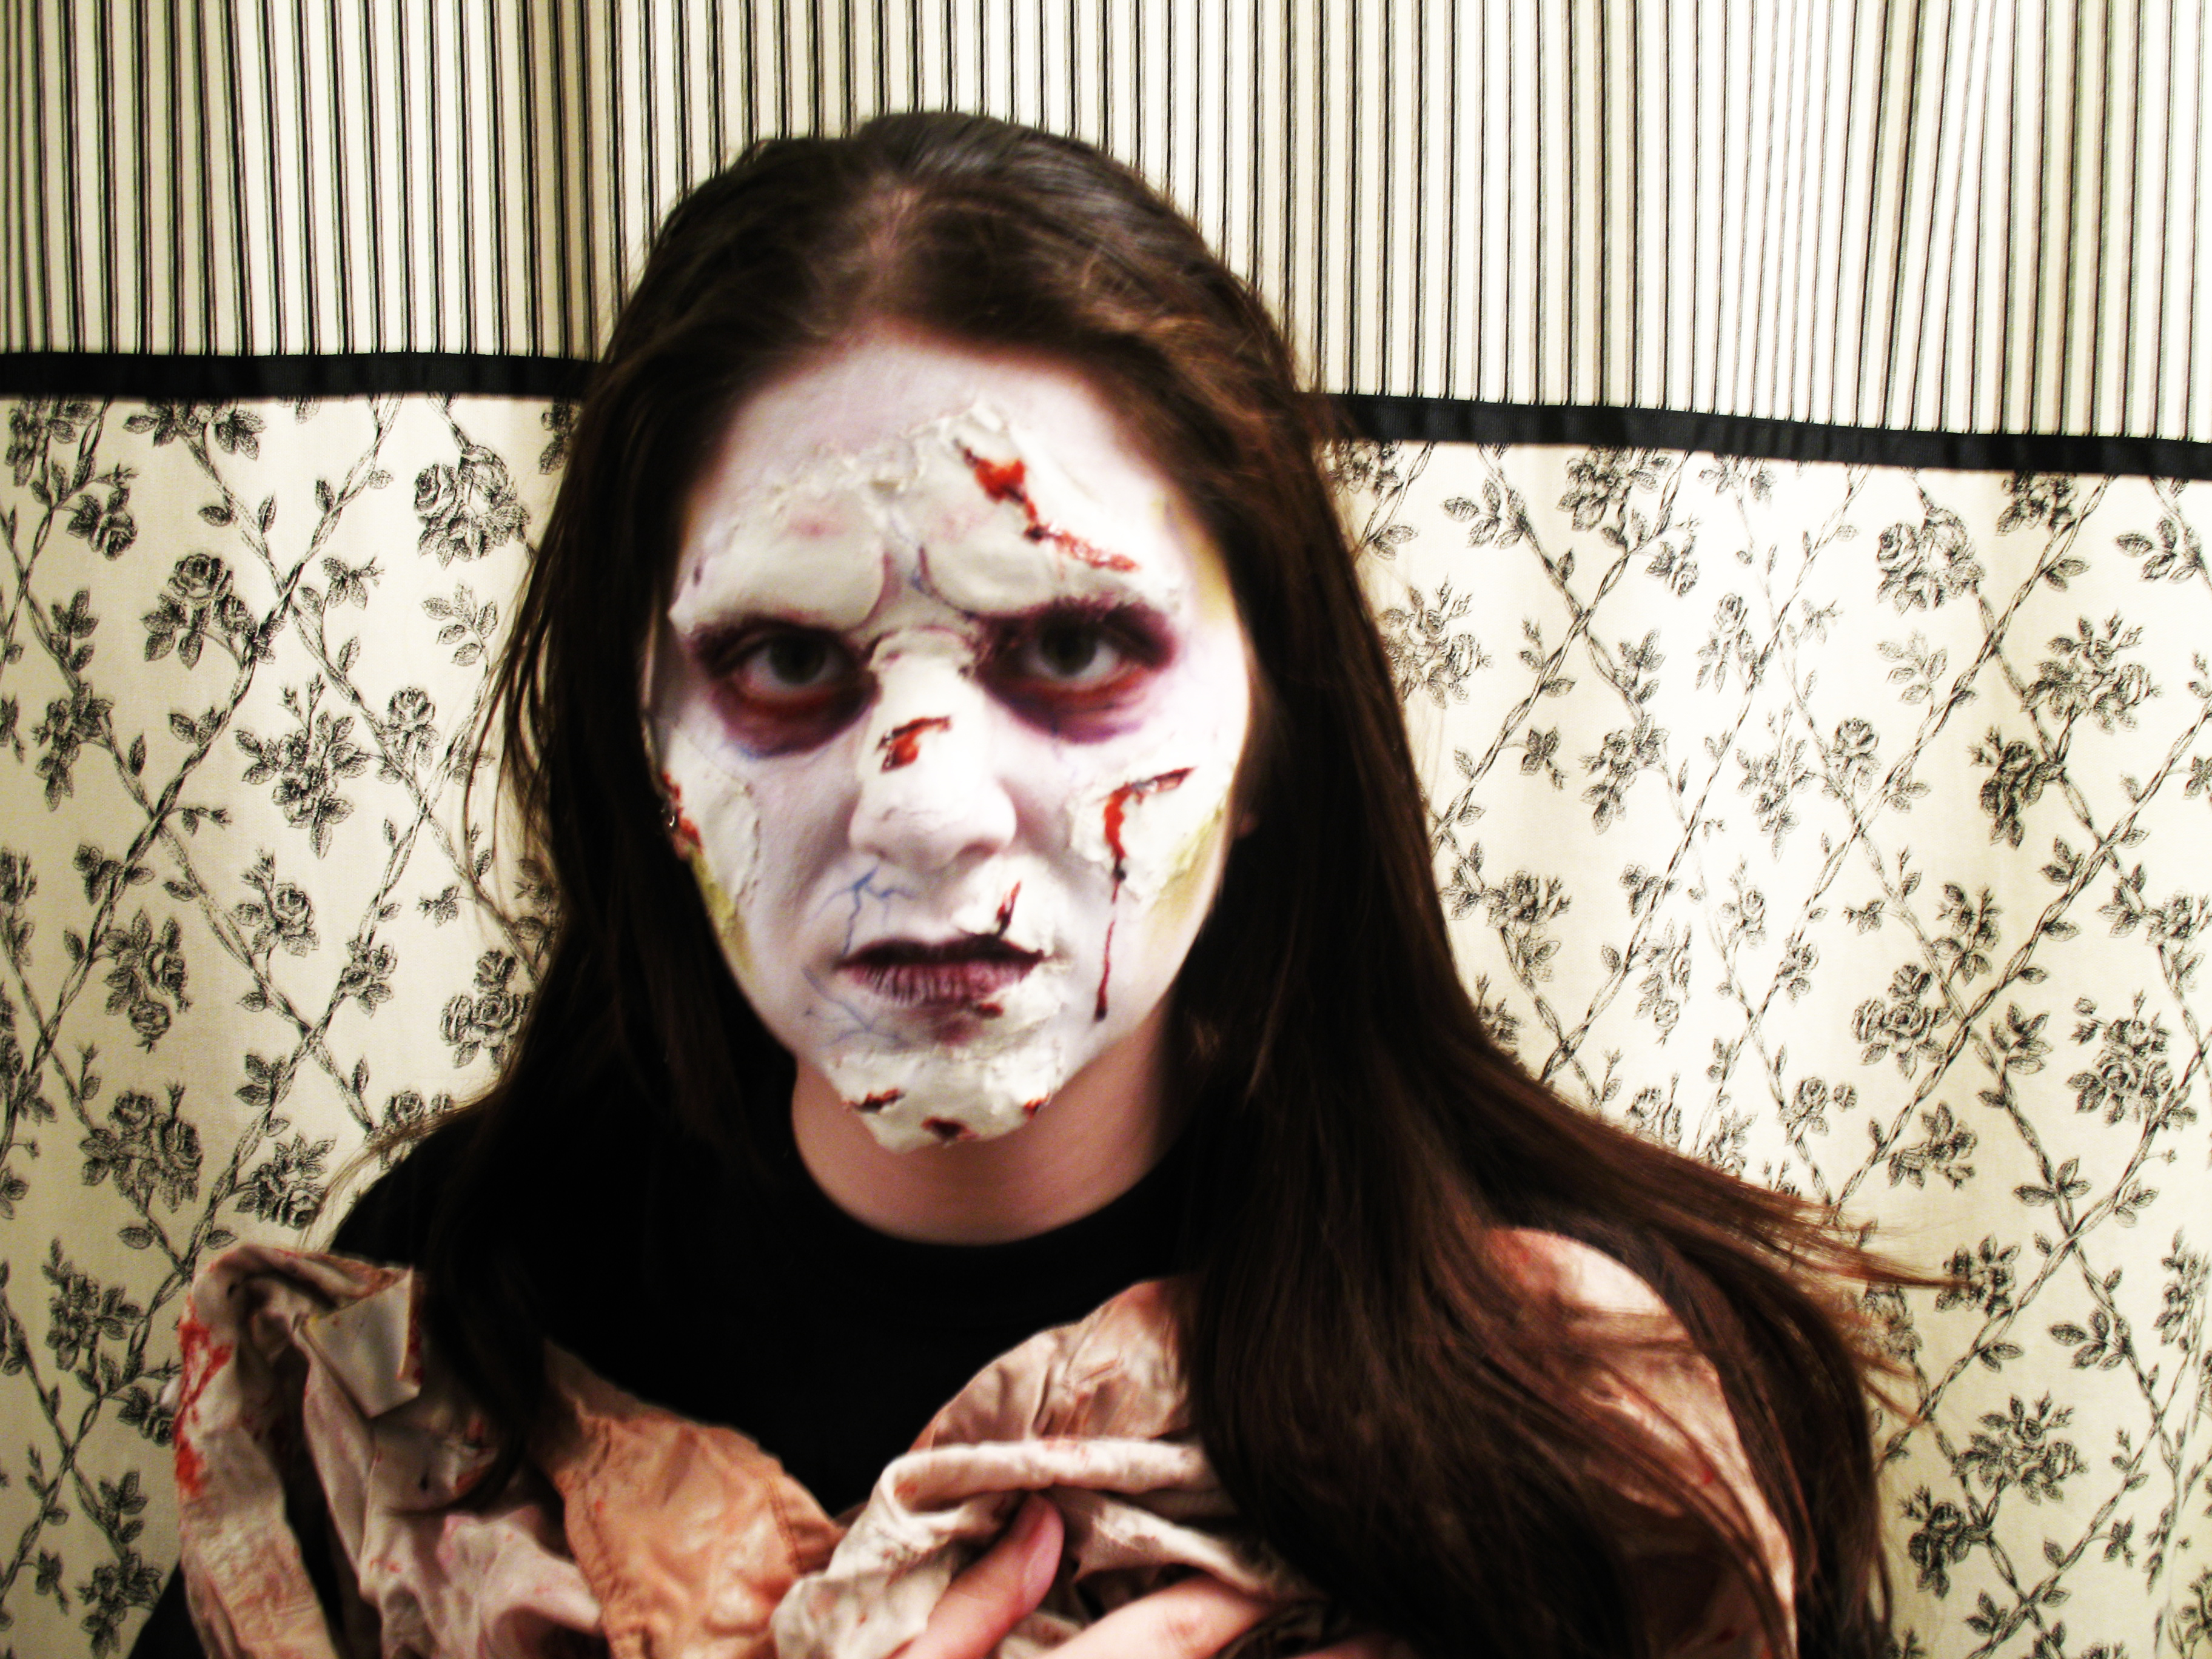 sfx makeup, special effects make up, horror, gore, trauma, wounds, prosthetic, latex